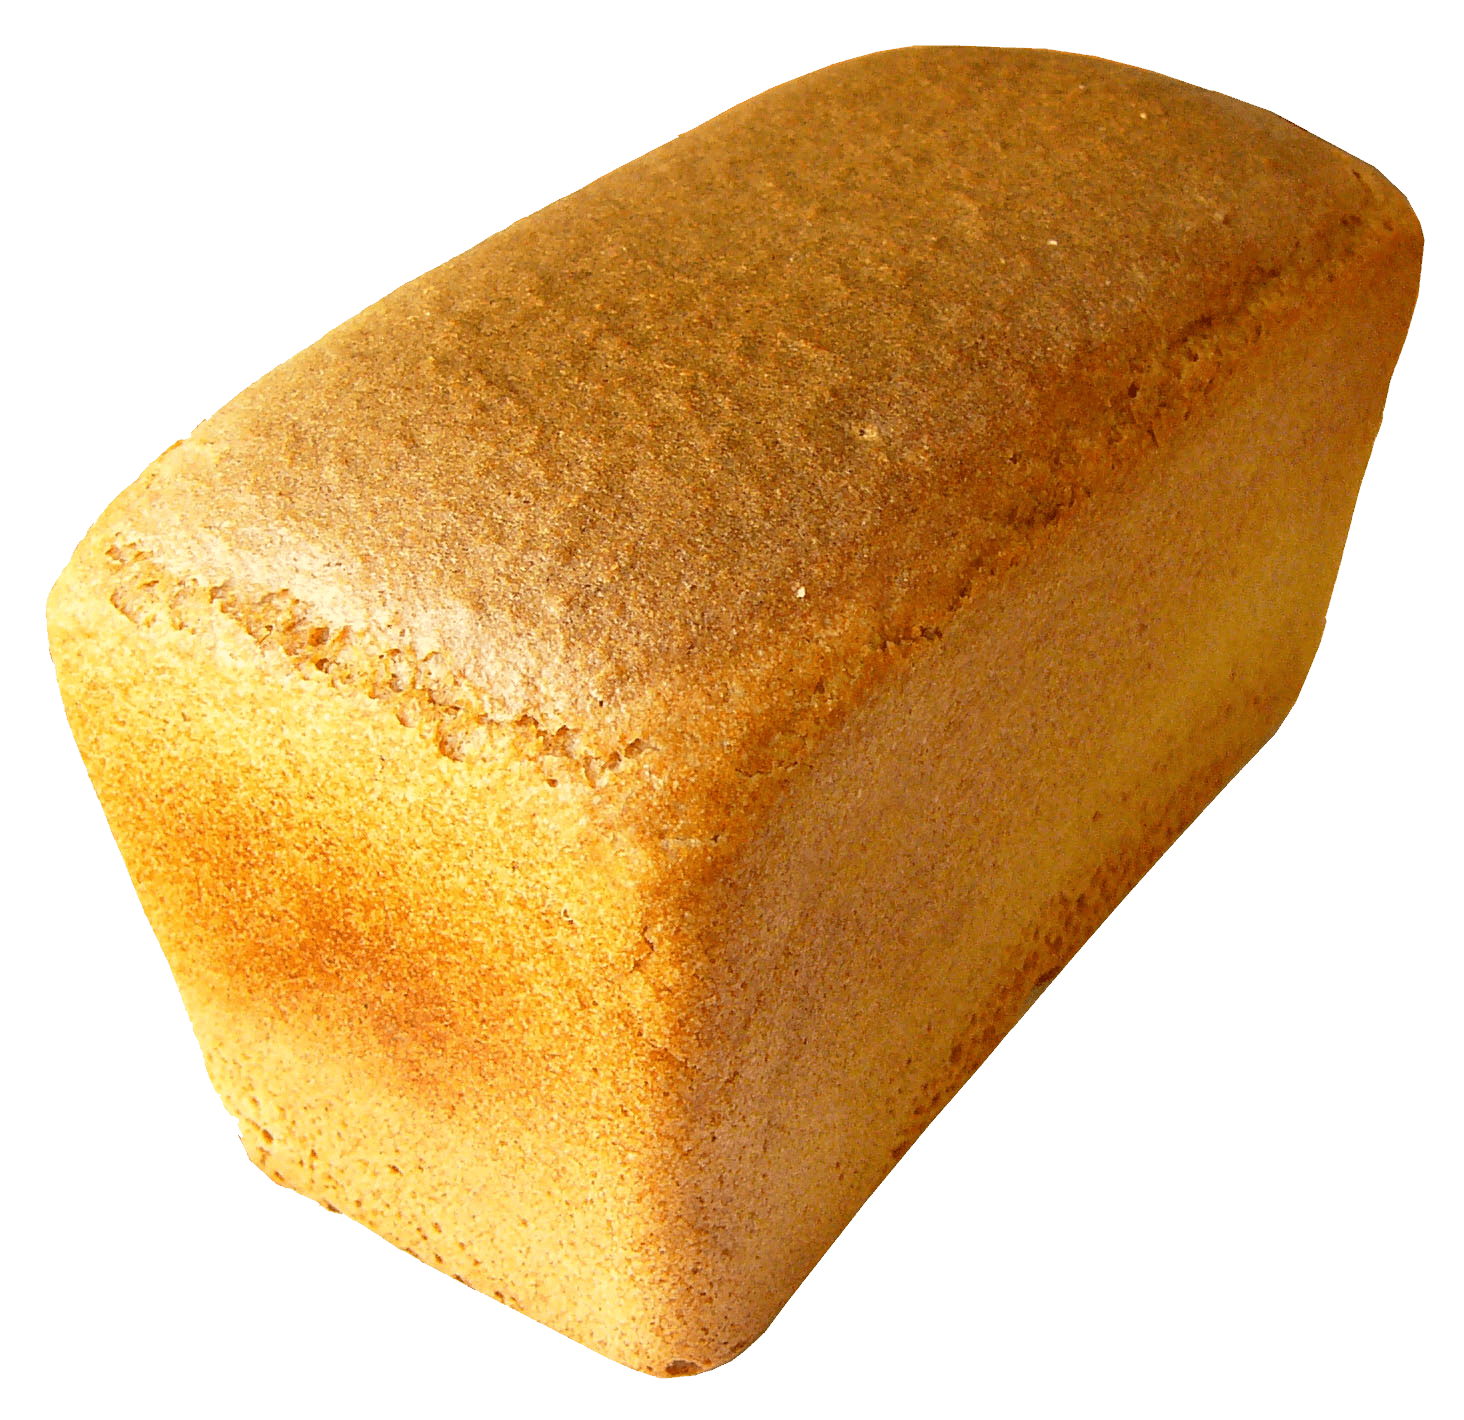 Whute Bread Png Image PNG Image